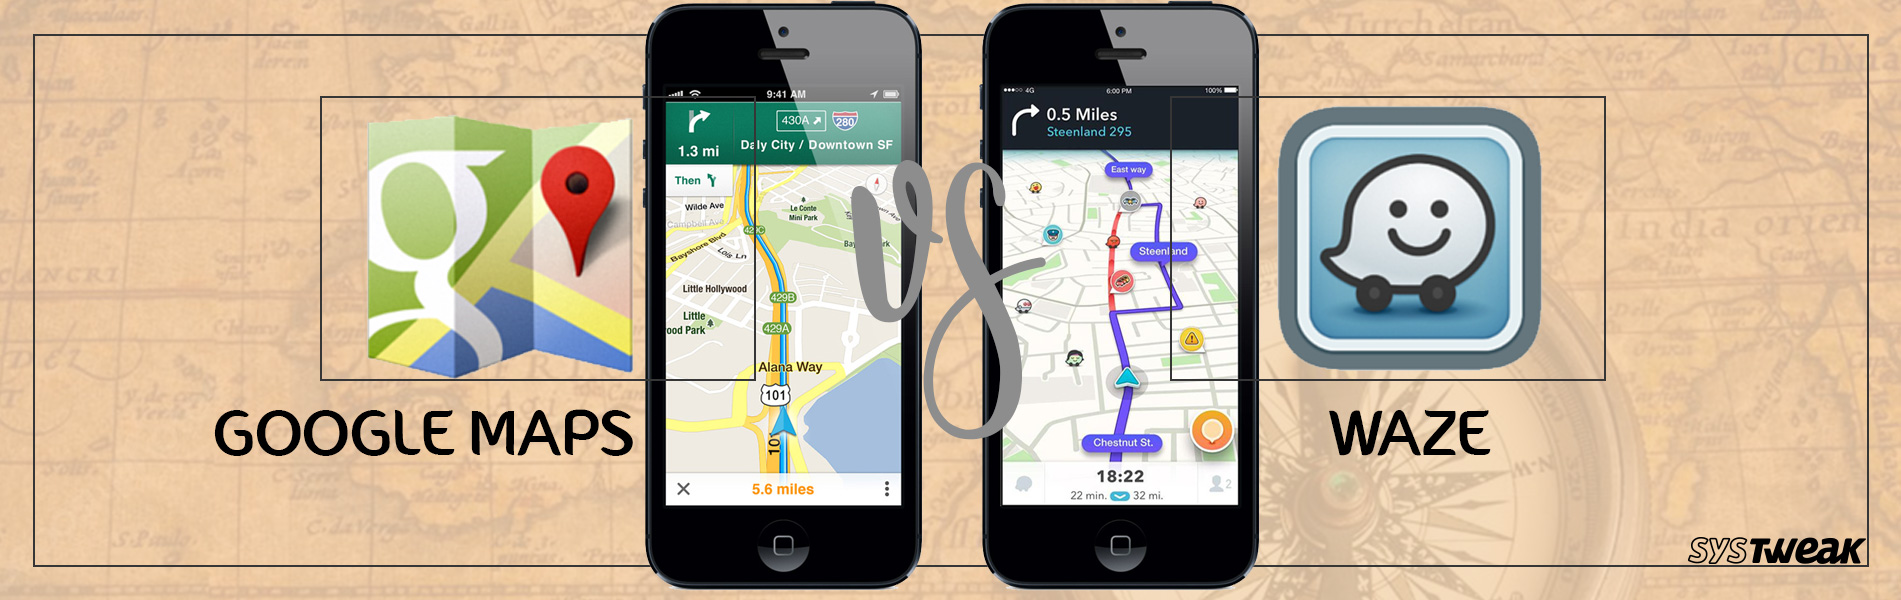 Waze Vs Google Maps! War of the Navigators